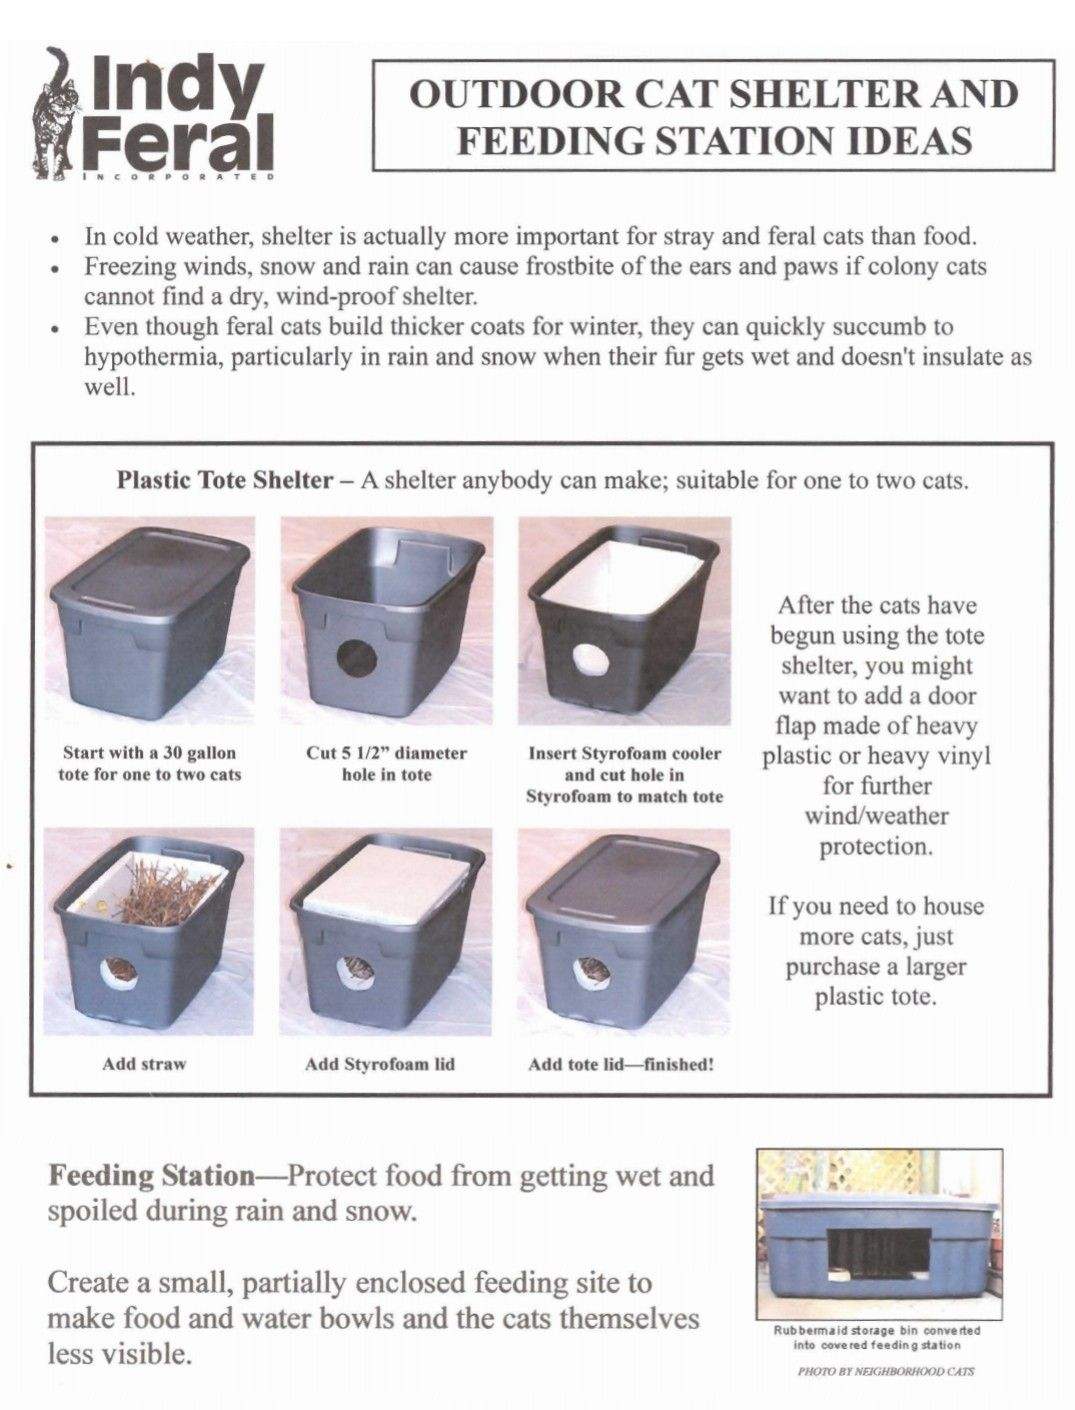 Indy Feral Outdoor Feral Cat Shelter Feeding Stations Ideas Diy Tips Feral Cat Shelter Feral Cats Outdoor Cat Shelter